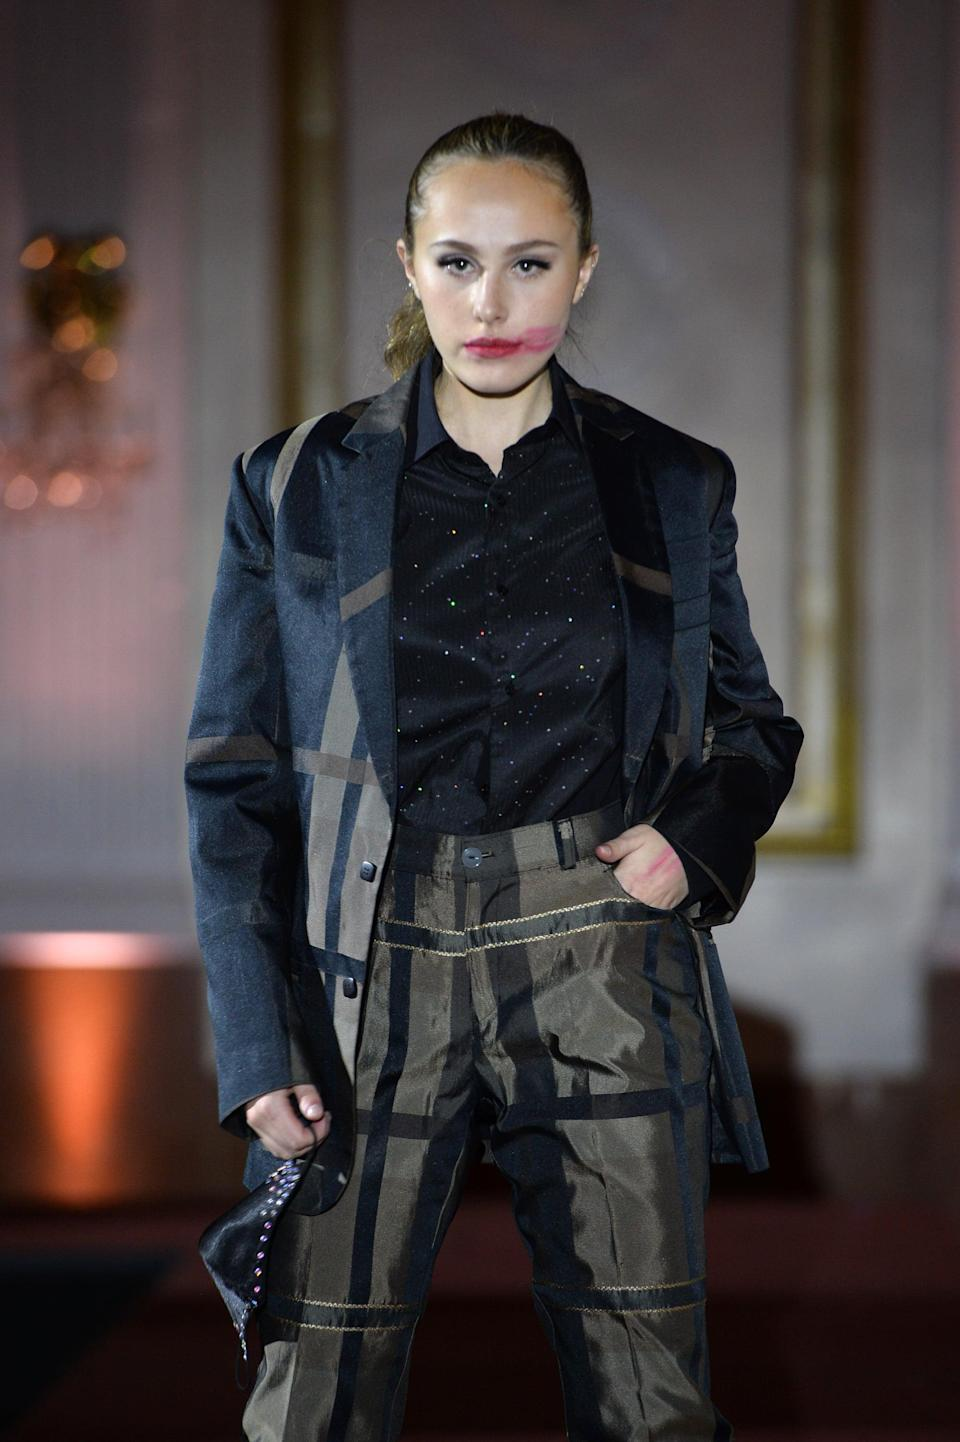 <p>Smeared red lipstick was featured on the hiTechMODA runway, which contrasted with the clean, simple face makeup that the model wore.</p>